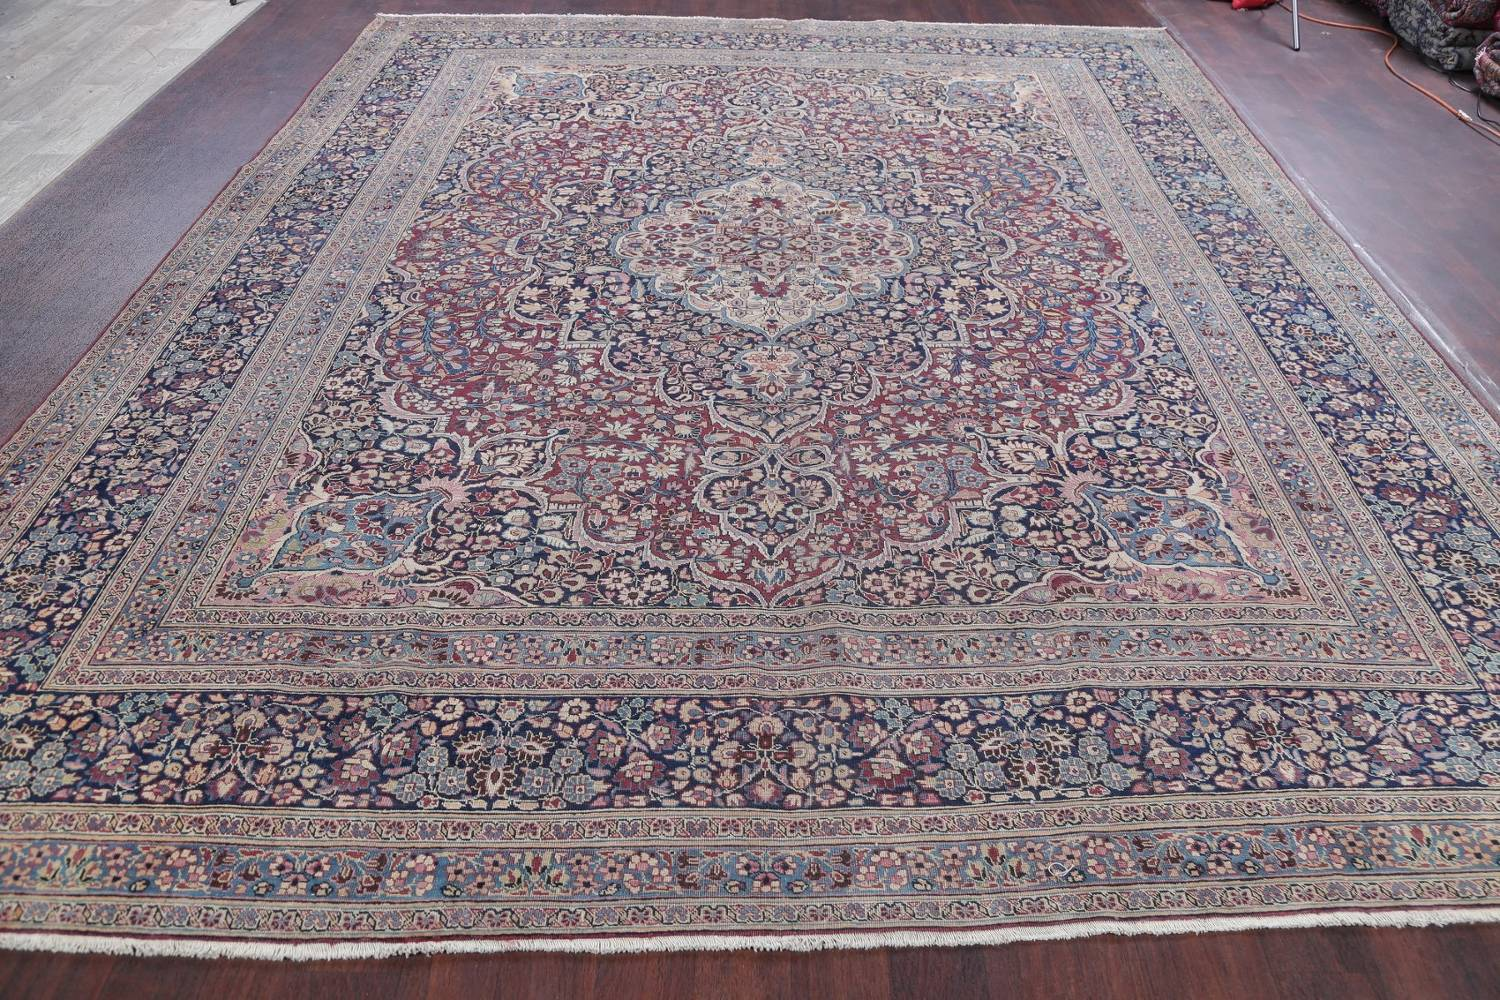 Pre-1900 Antique Floral Mashad Persian Hand-Knotted 10x13 Burgundy Area Rug image 19